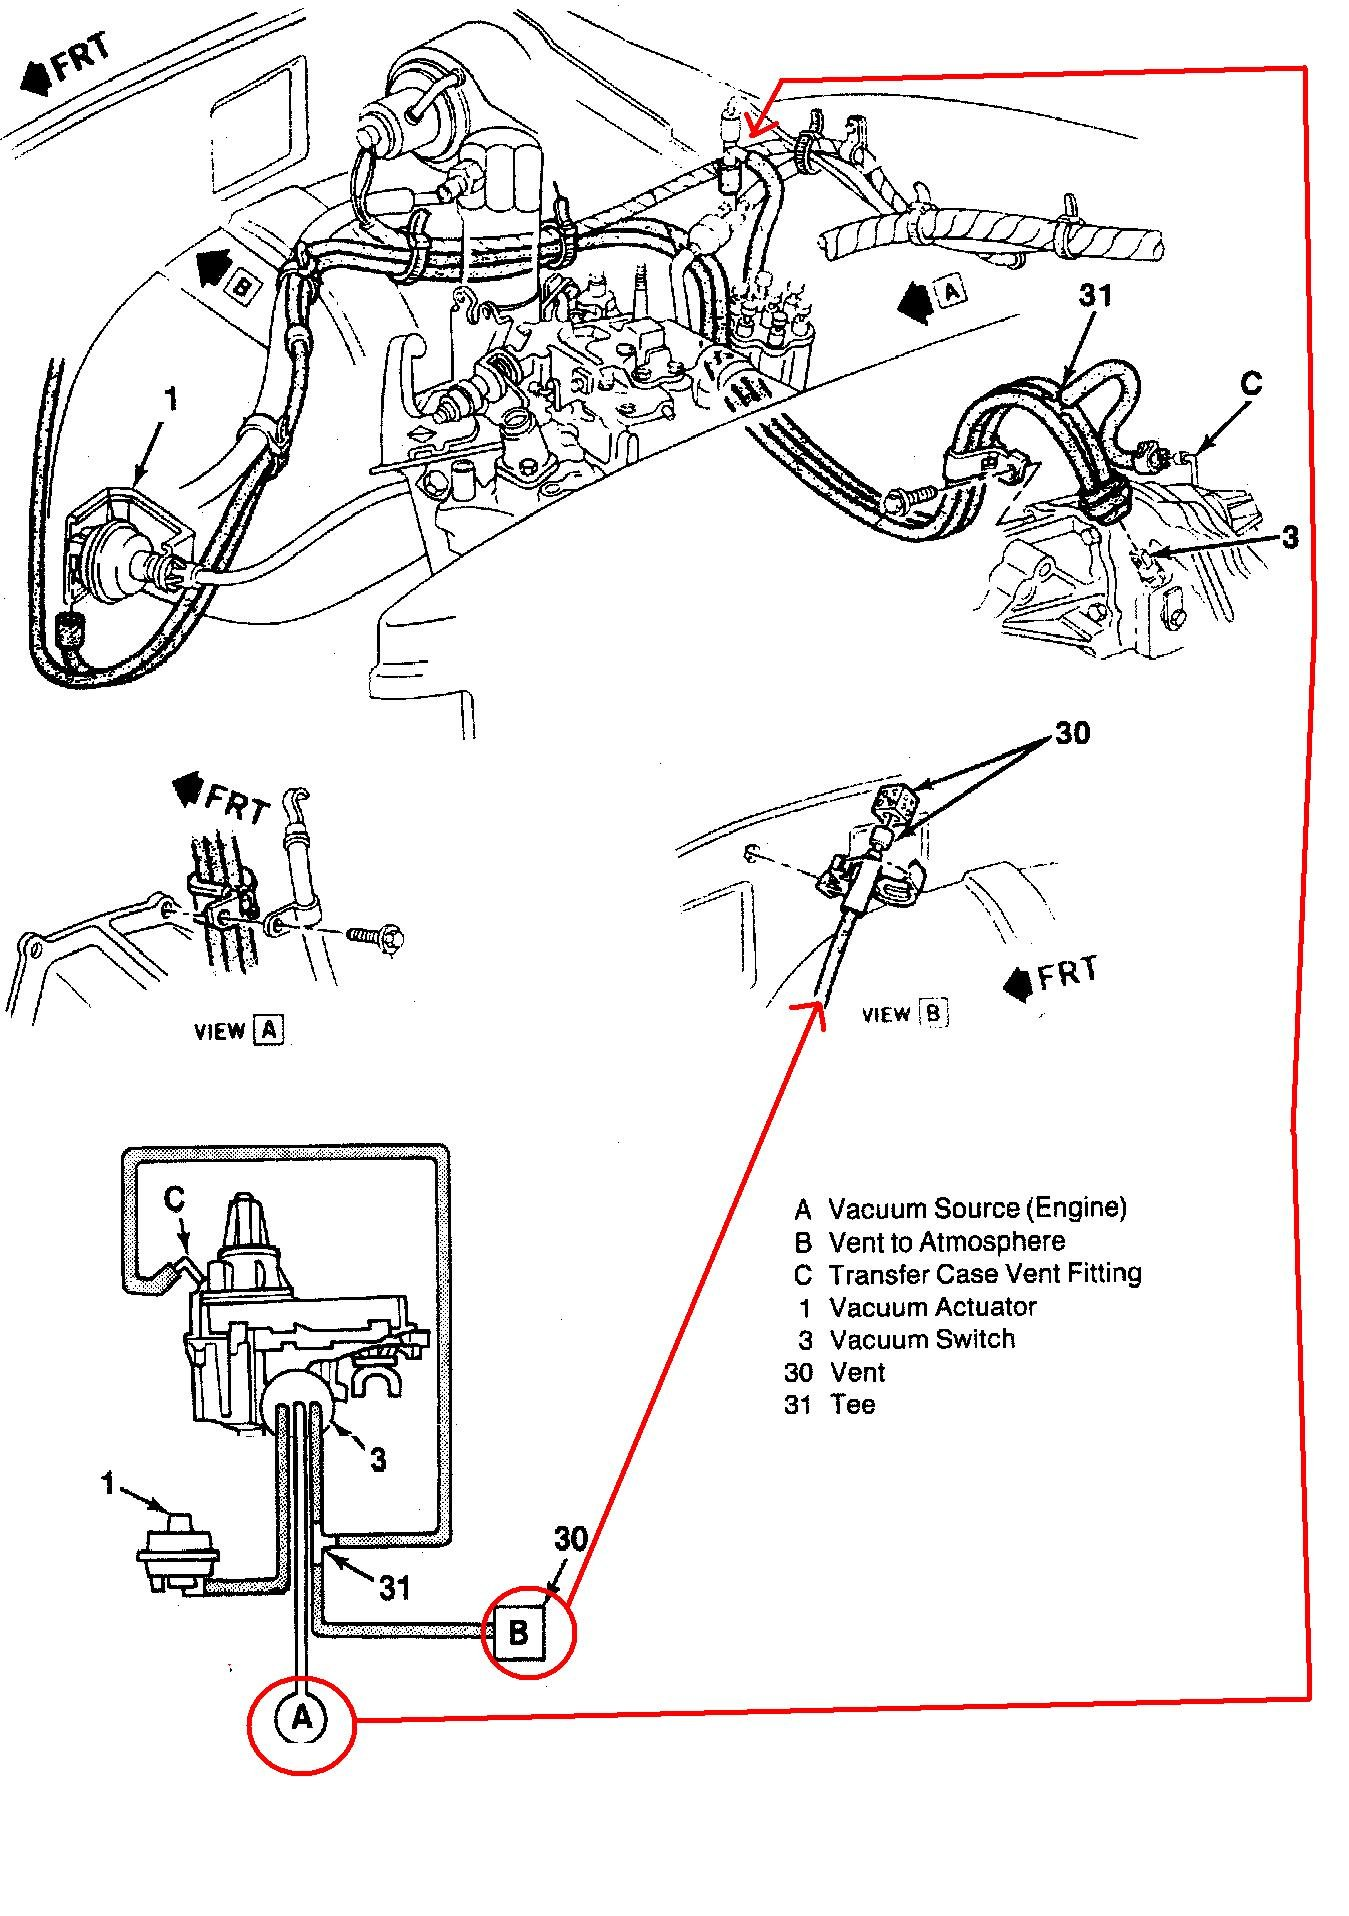 gmc pickup straight 6 engine emmision diagrams see 2004